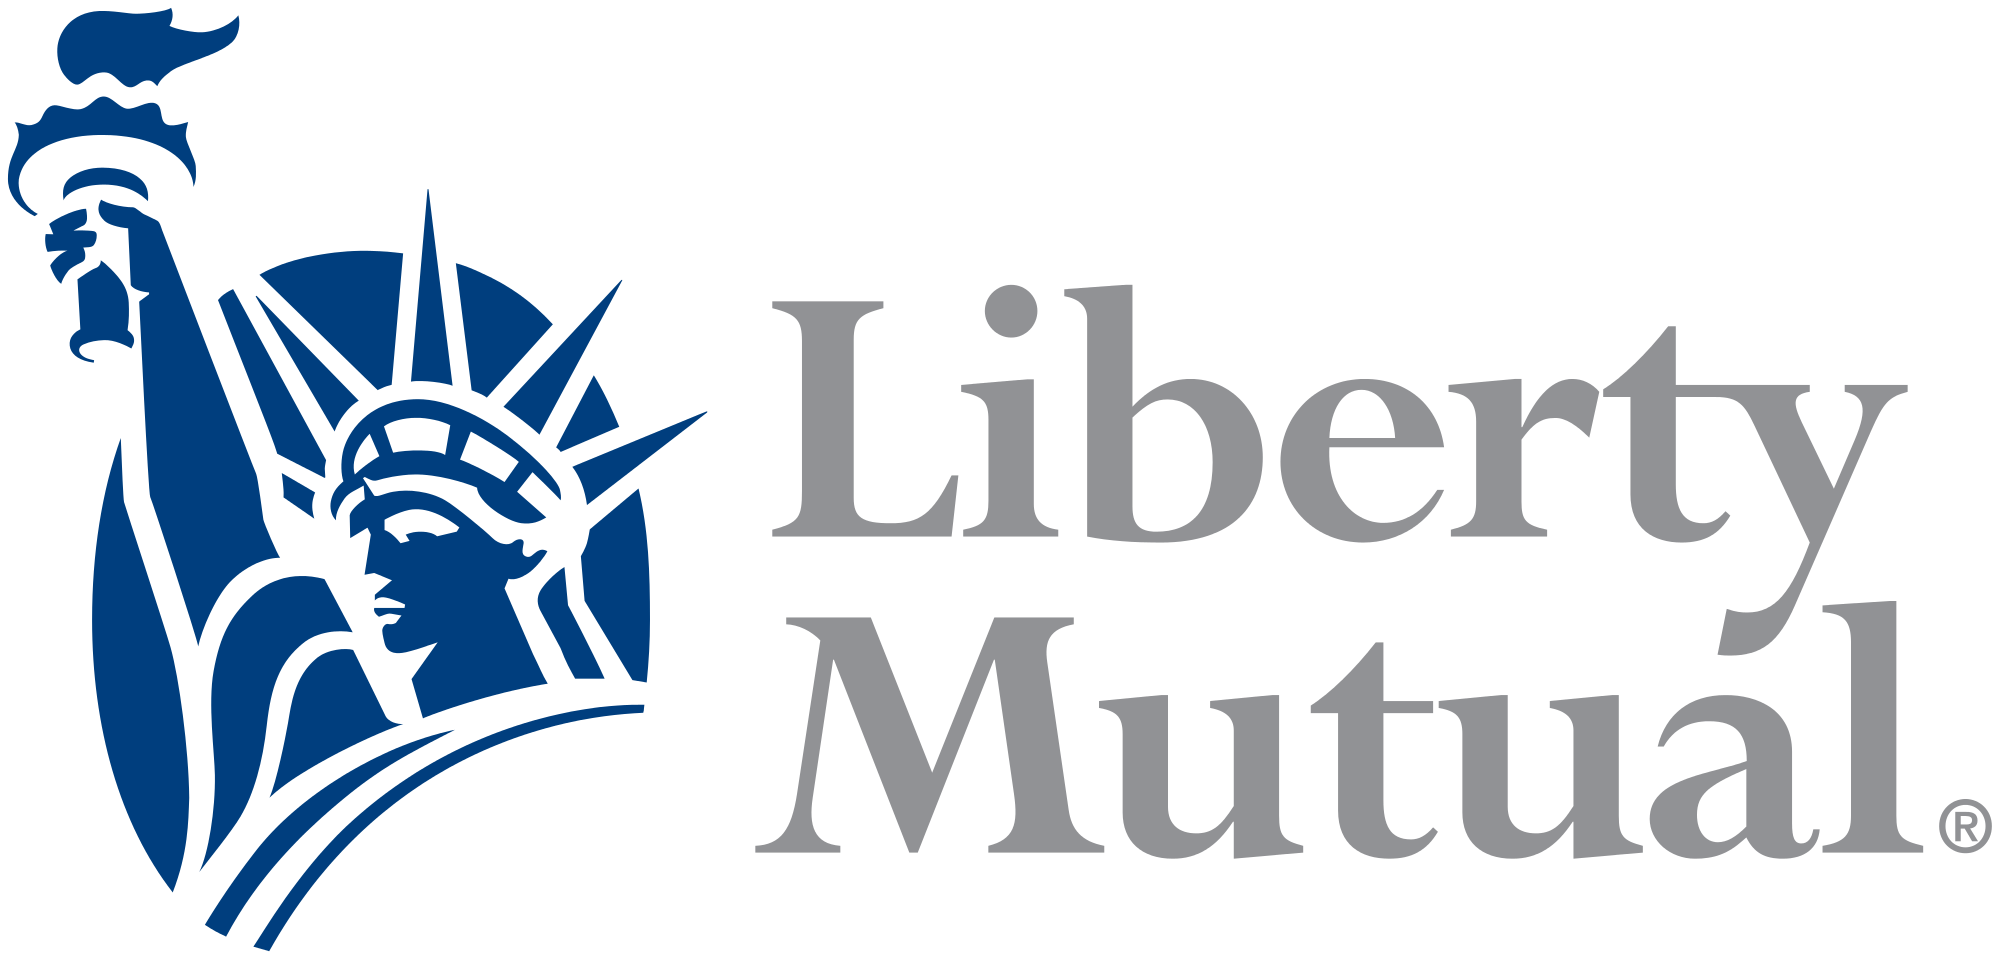 Liberty Mutual Insurance Quote Liberty Mutual Insurance Logos  Google Search  Insurance .